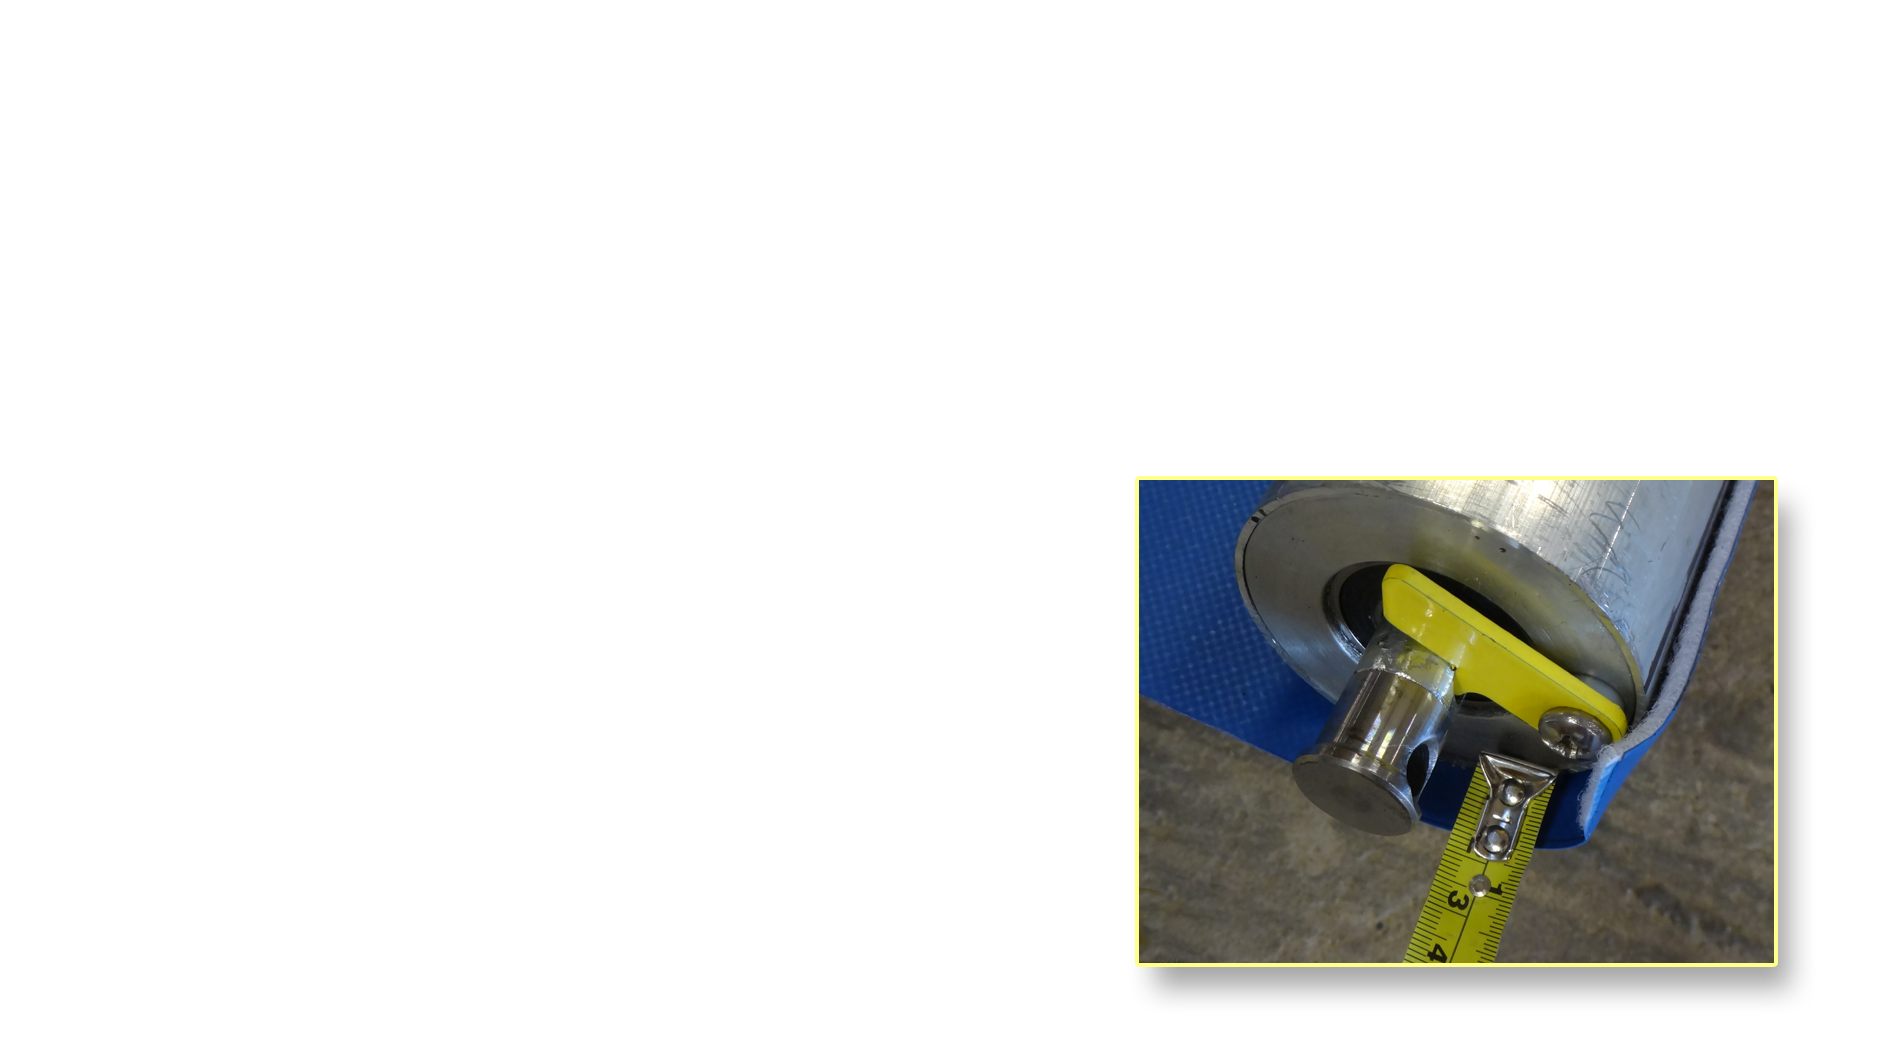 kool shield spindle with tape measure